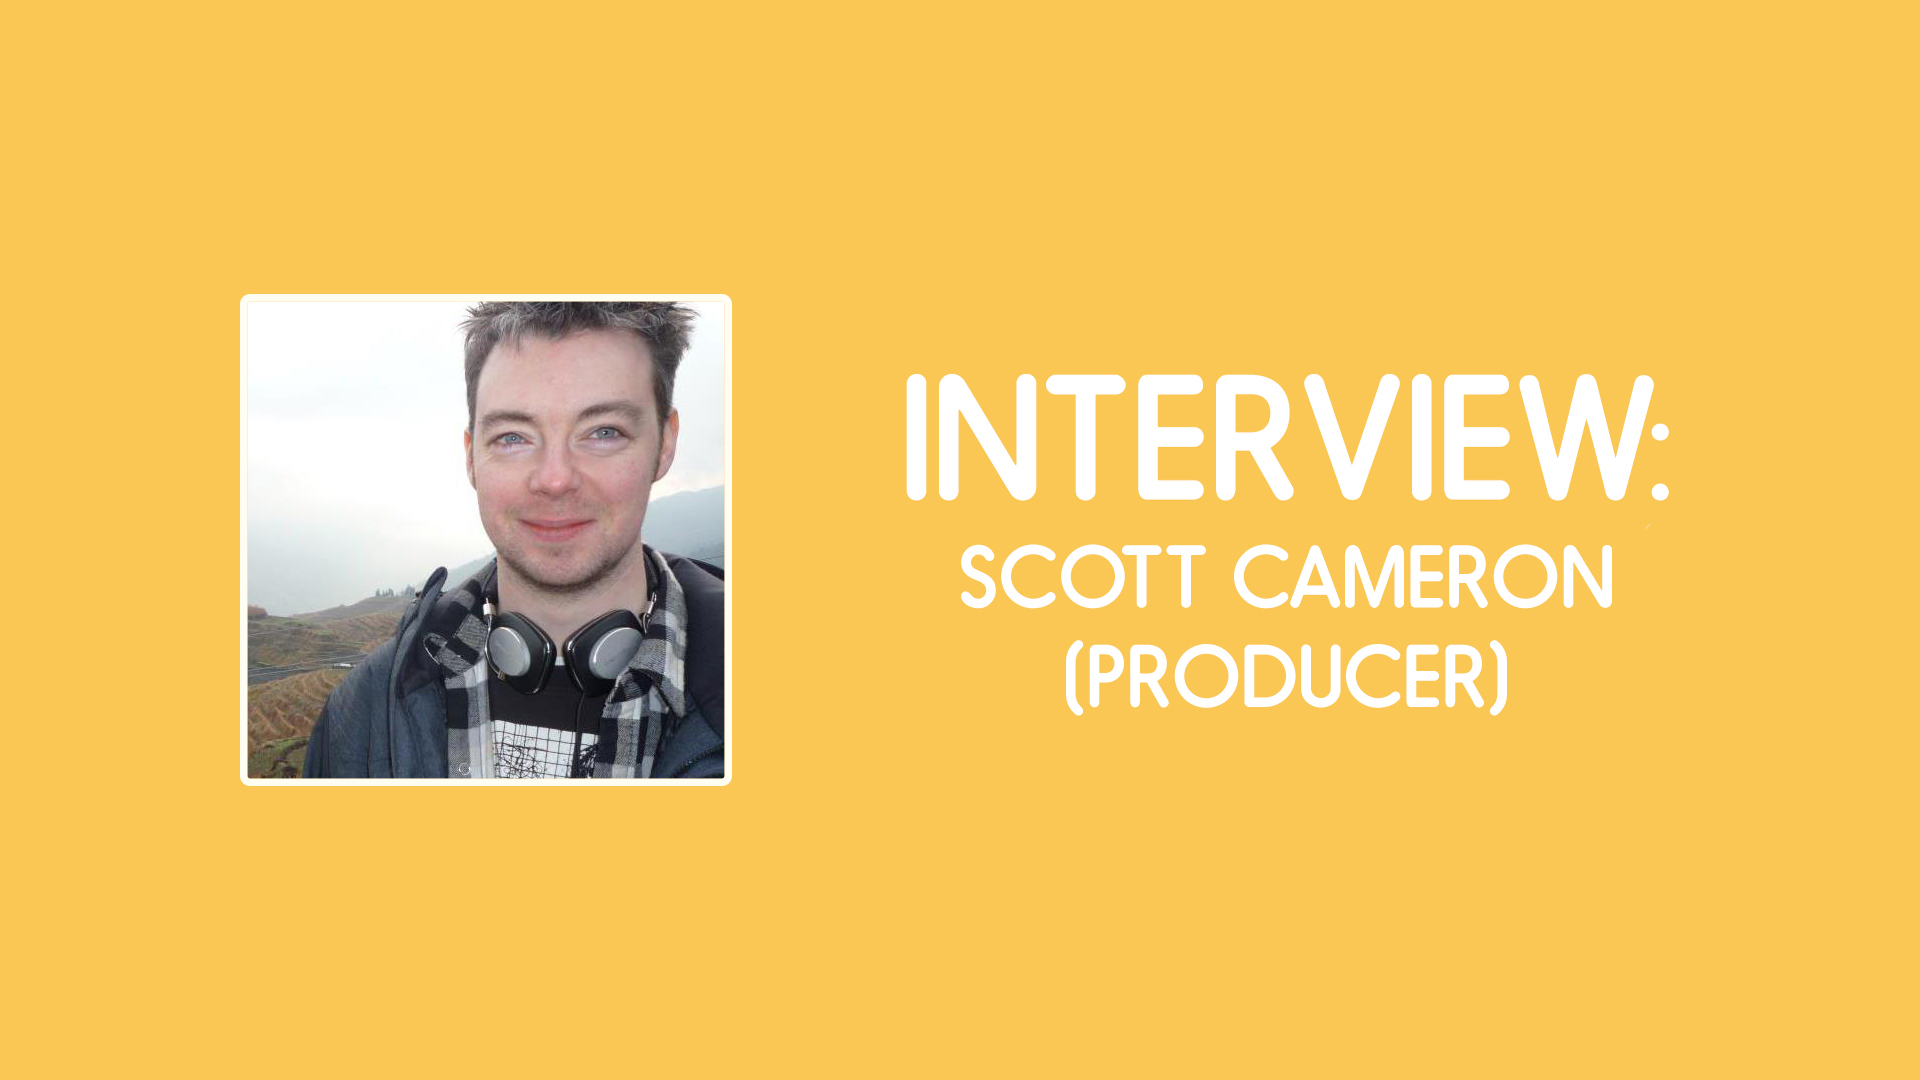 Scott Cameron Producer Interview